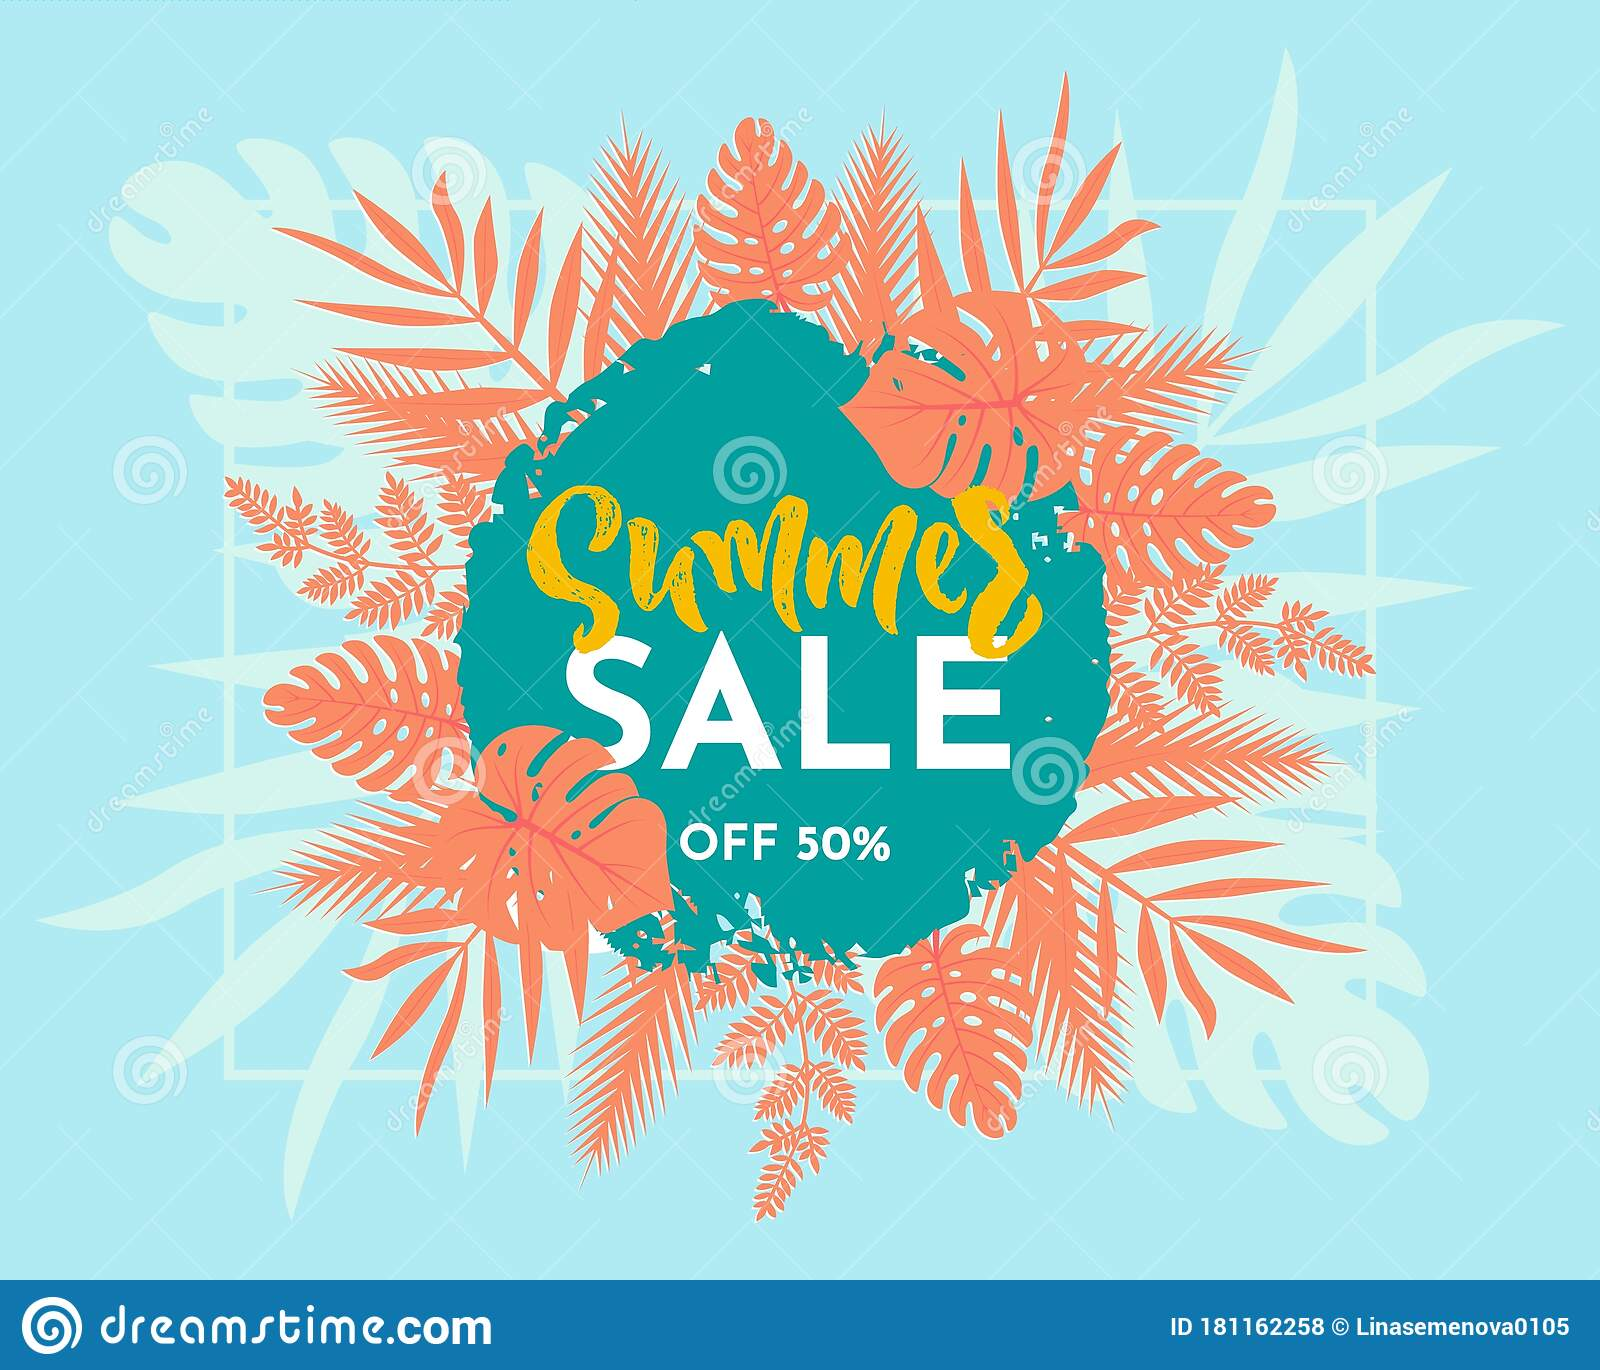 Poster Online Kaufen Summer Sale Web Banner, Tropical Colorful Leaves. Advertisement On Blue Background. Vector Illustration Stock Vector - Illustration Of Fashion, Sell: 181162258